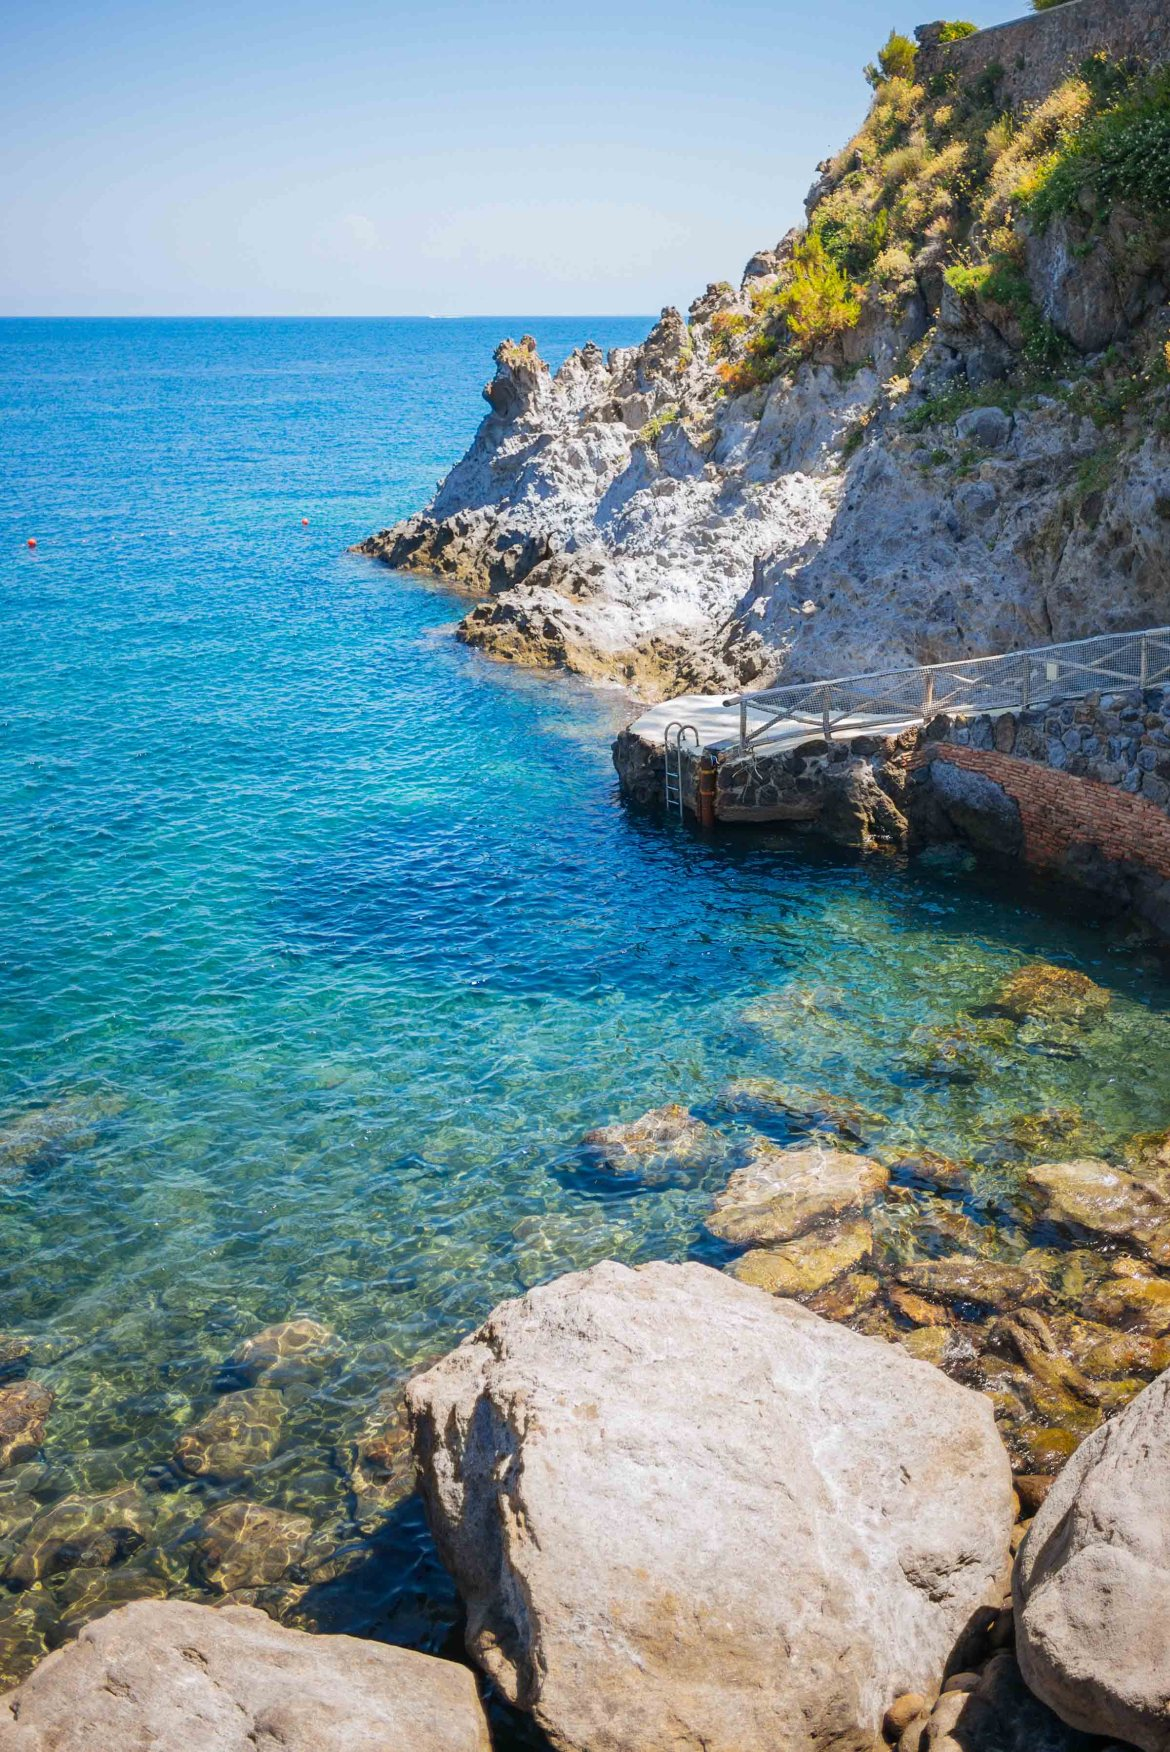 Know where to go when you visit Ischia in the Amalfi Coast